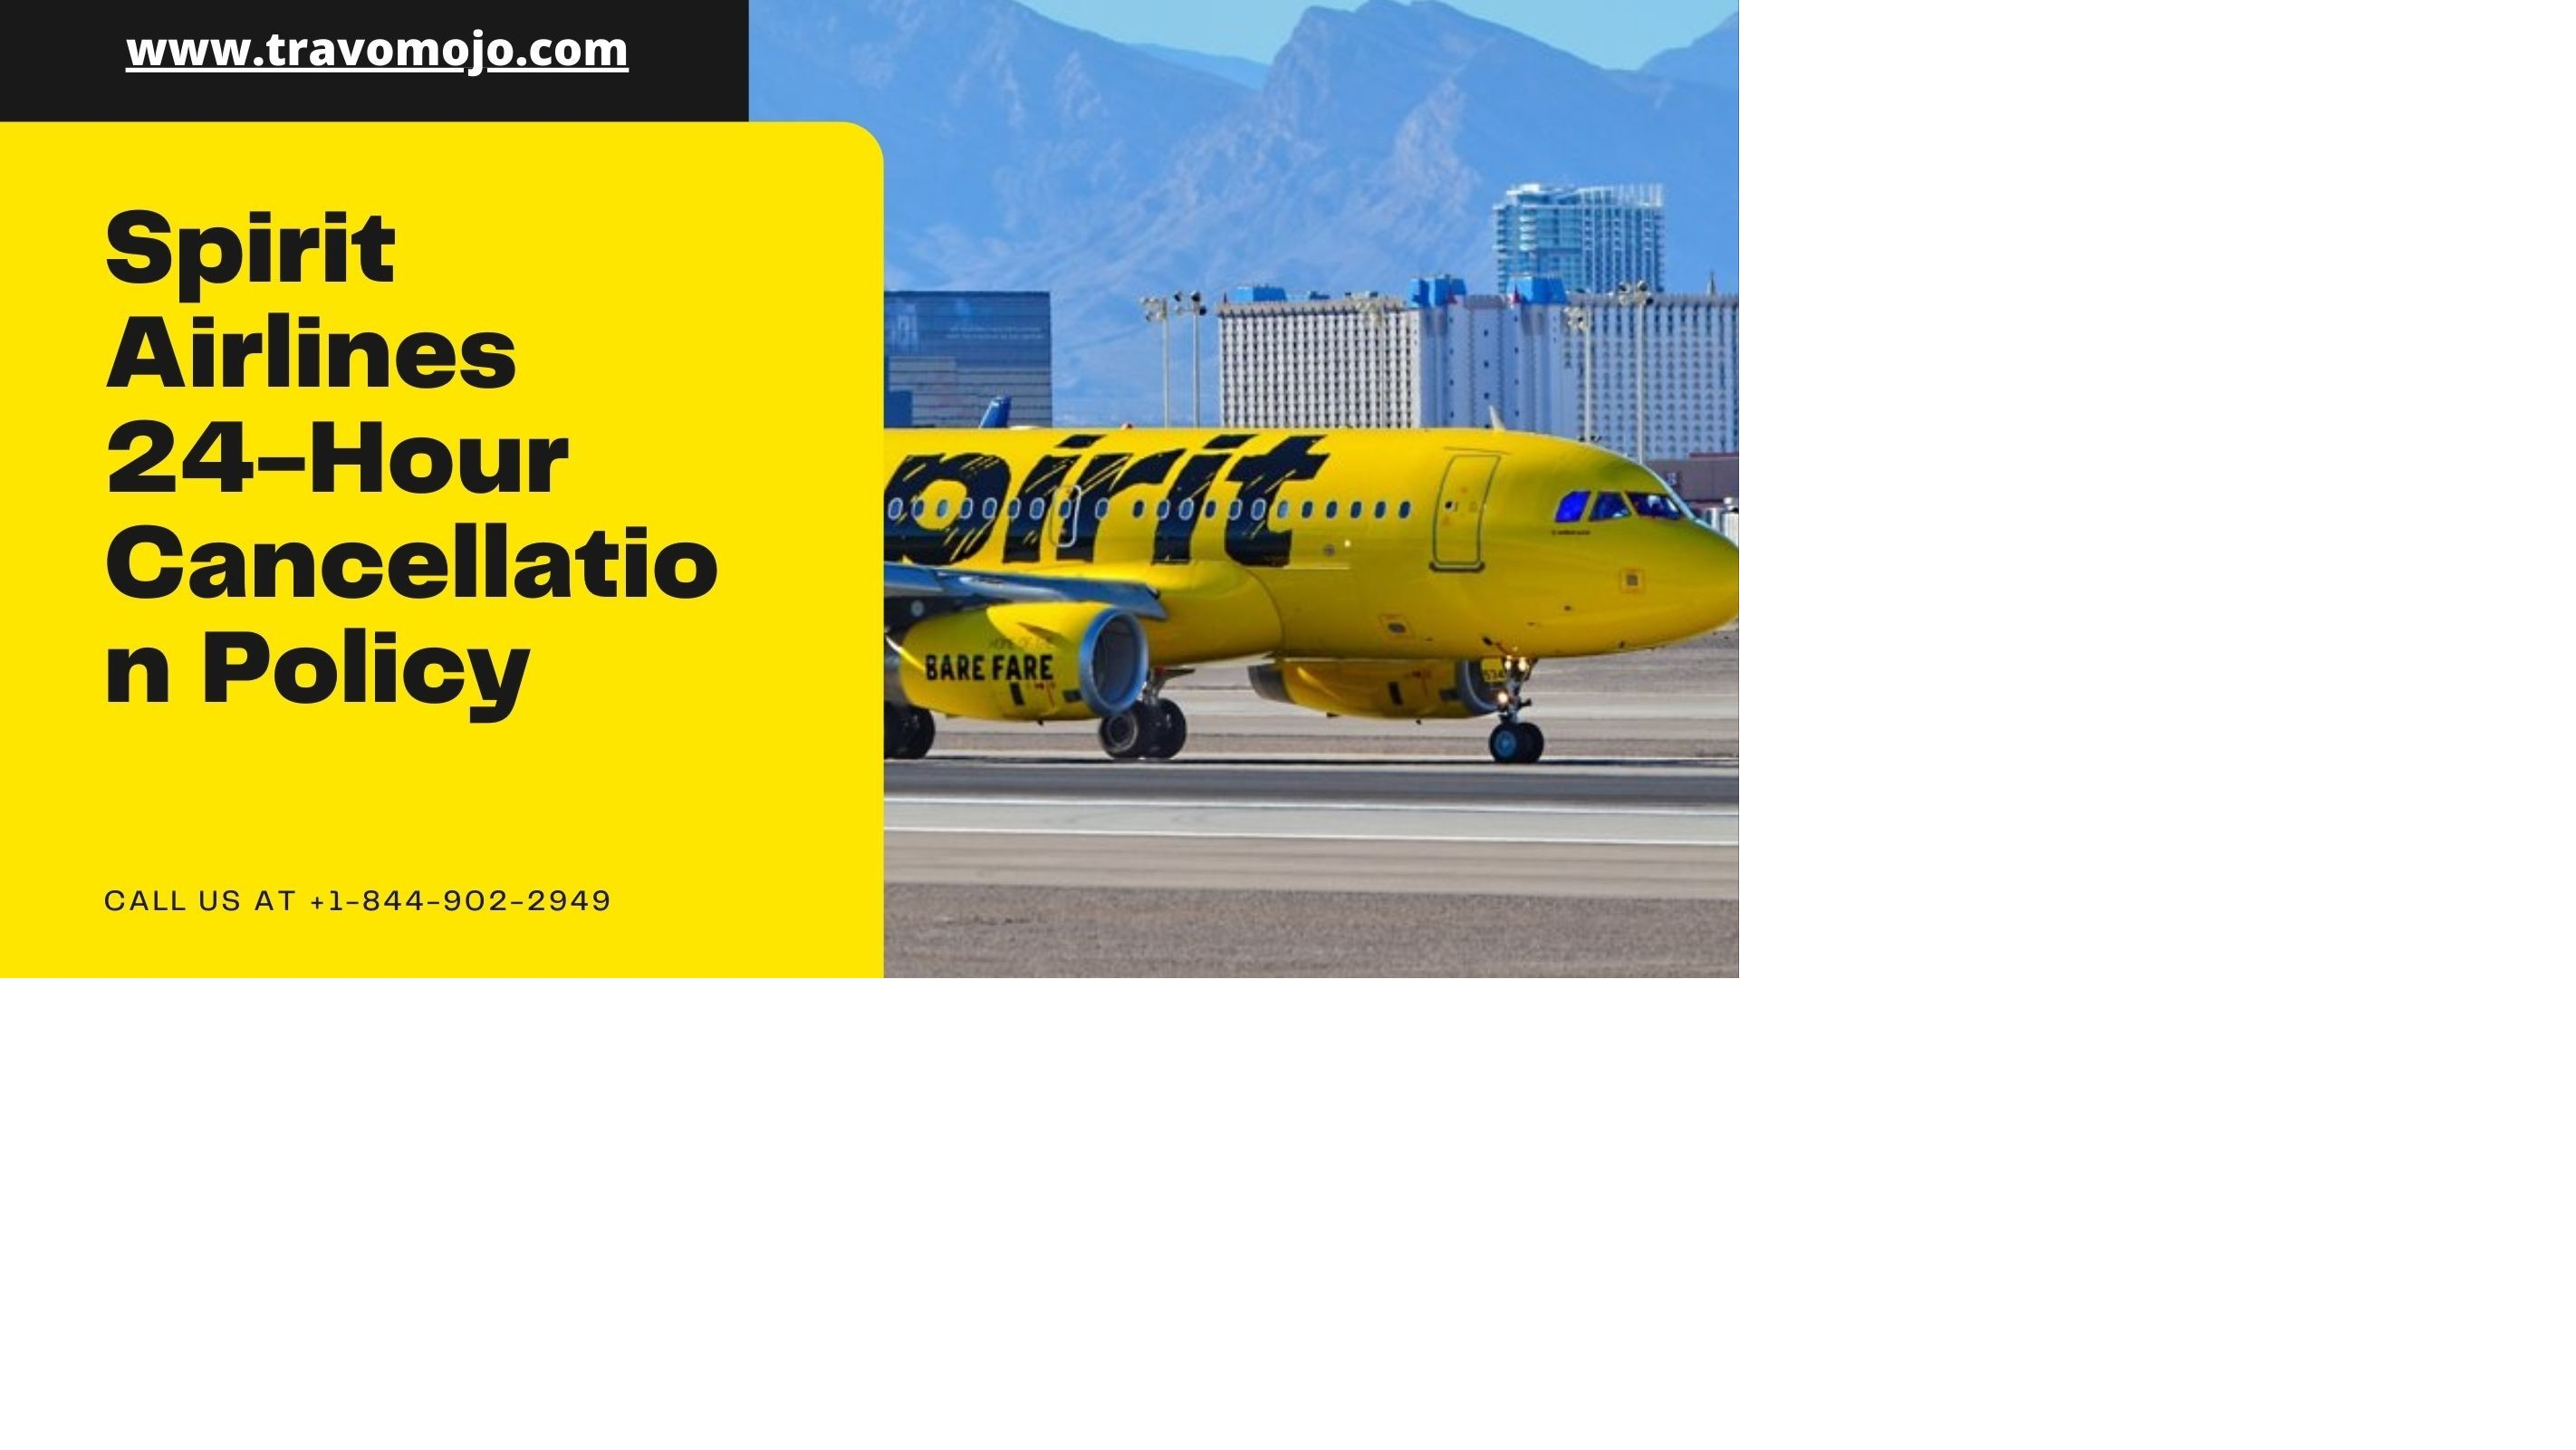 Spirit Airlines Flight ticket online